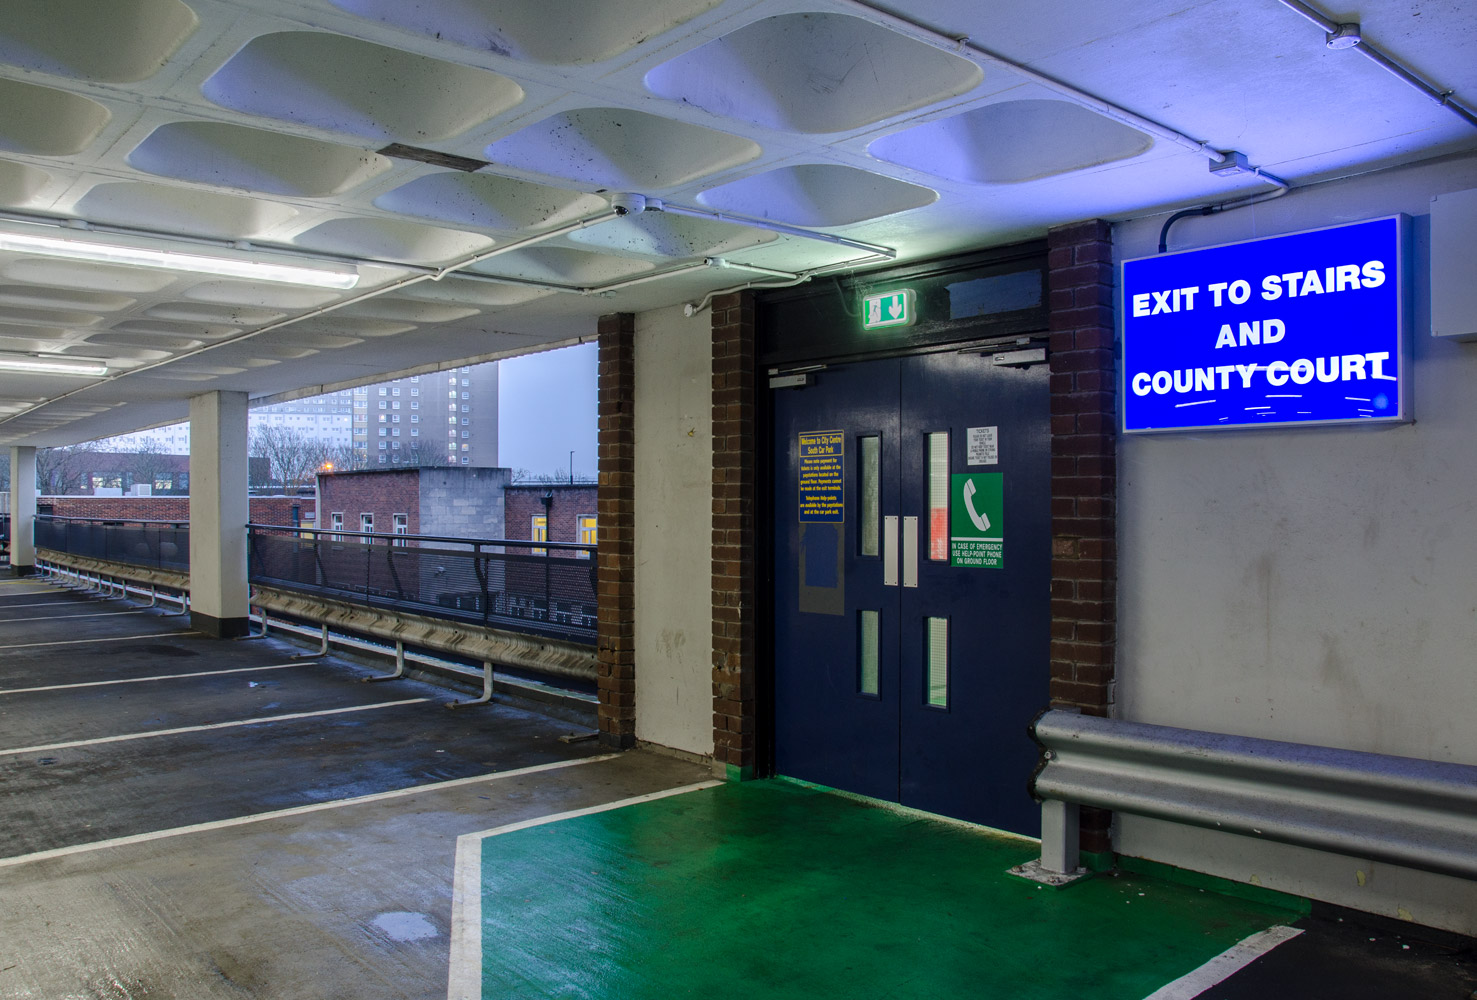 brunel-carpark-04.jpg